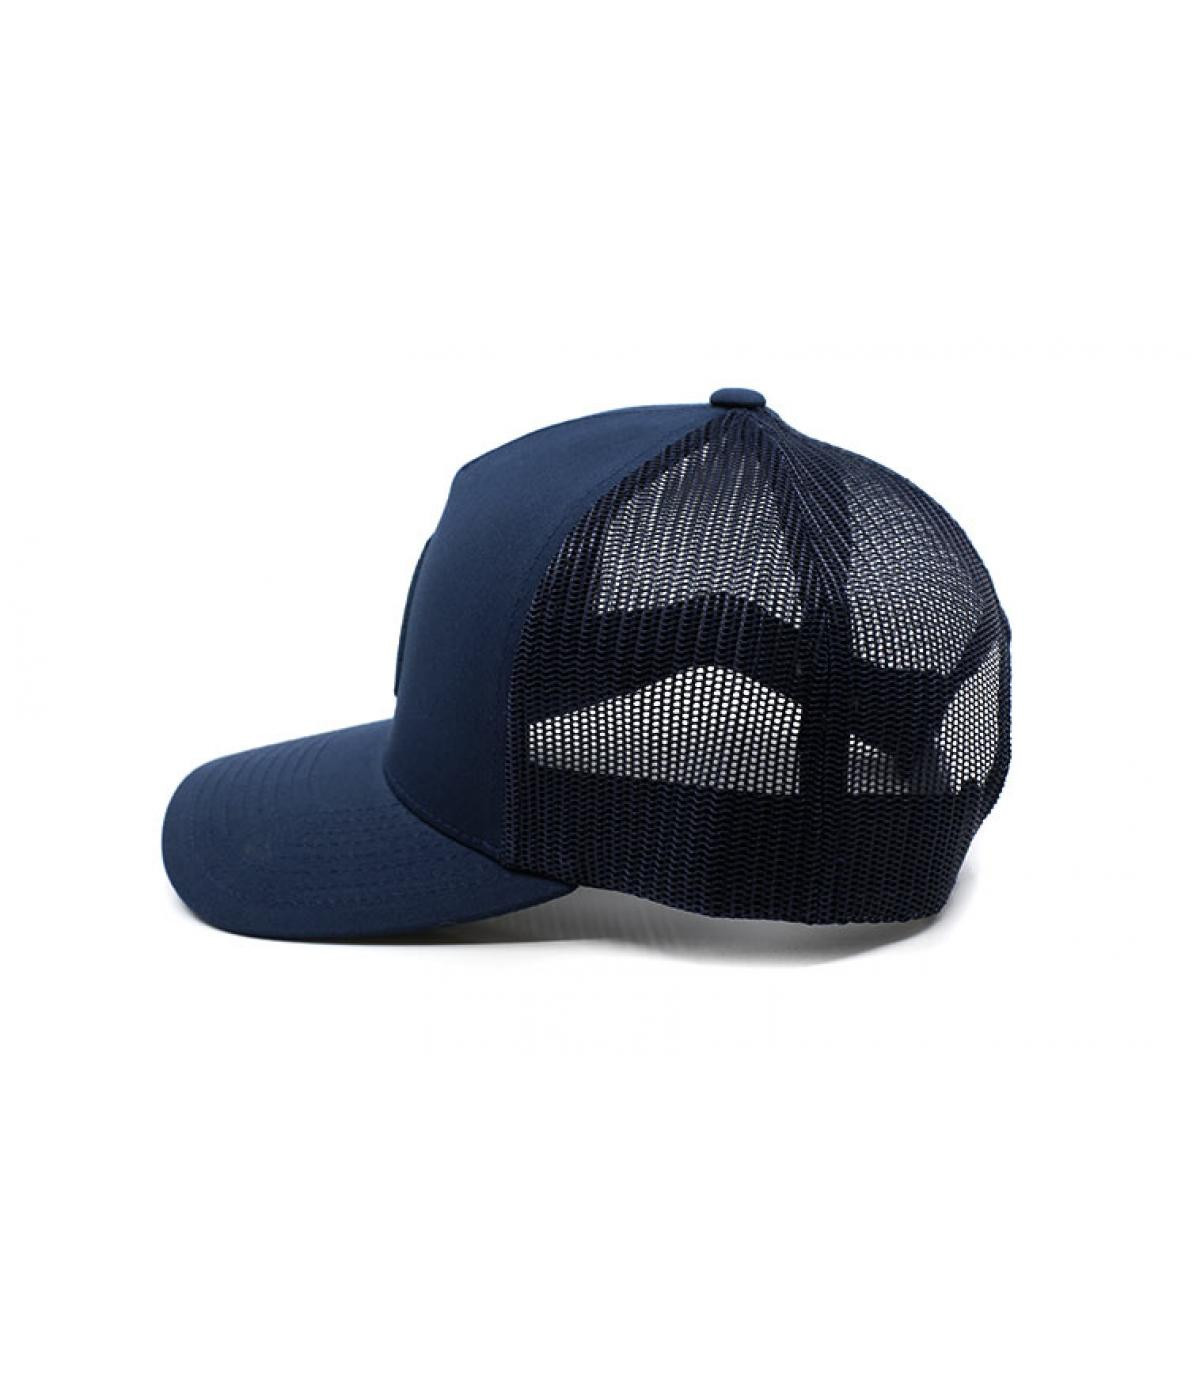 Details Iconed all navy - afbeeling 4